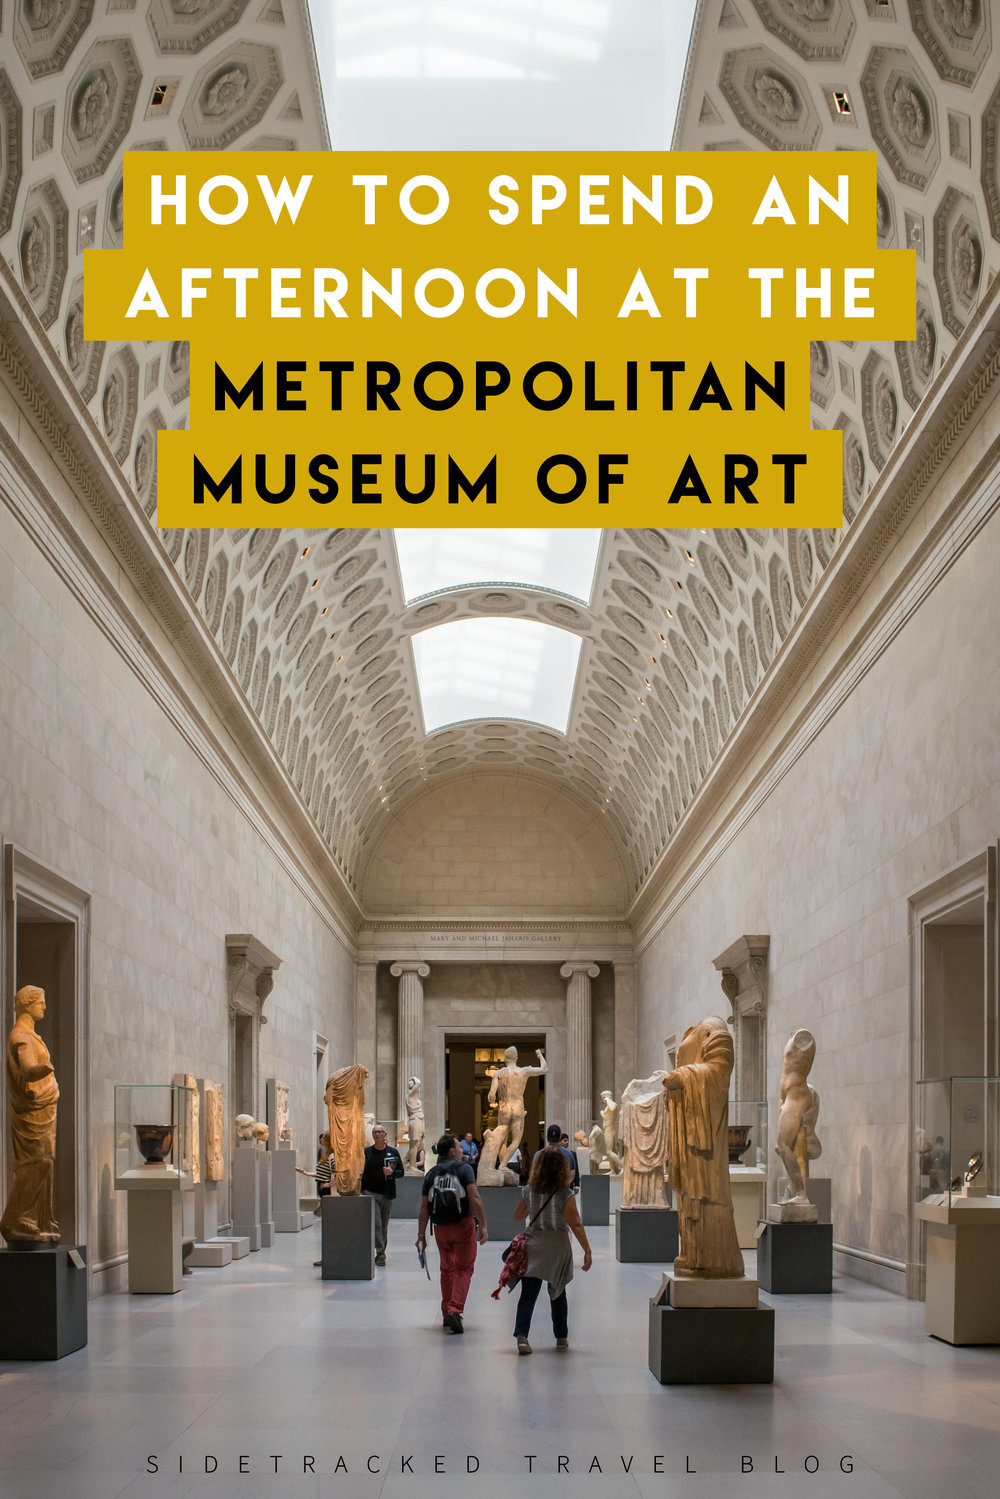 In this article you'll find a list of some of the most popular galleries in the Metropolitan Museum of Art. Pick one and spend a few hours immersed in the history and culture of that region. Or, give each gallery a quick walk through to get a brief overview of the incredible pieces featured in one of the world's biggest museums.